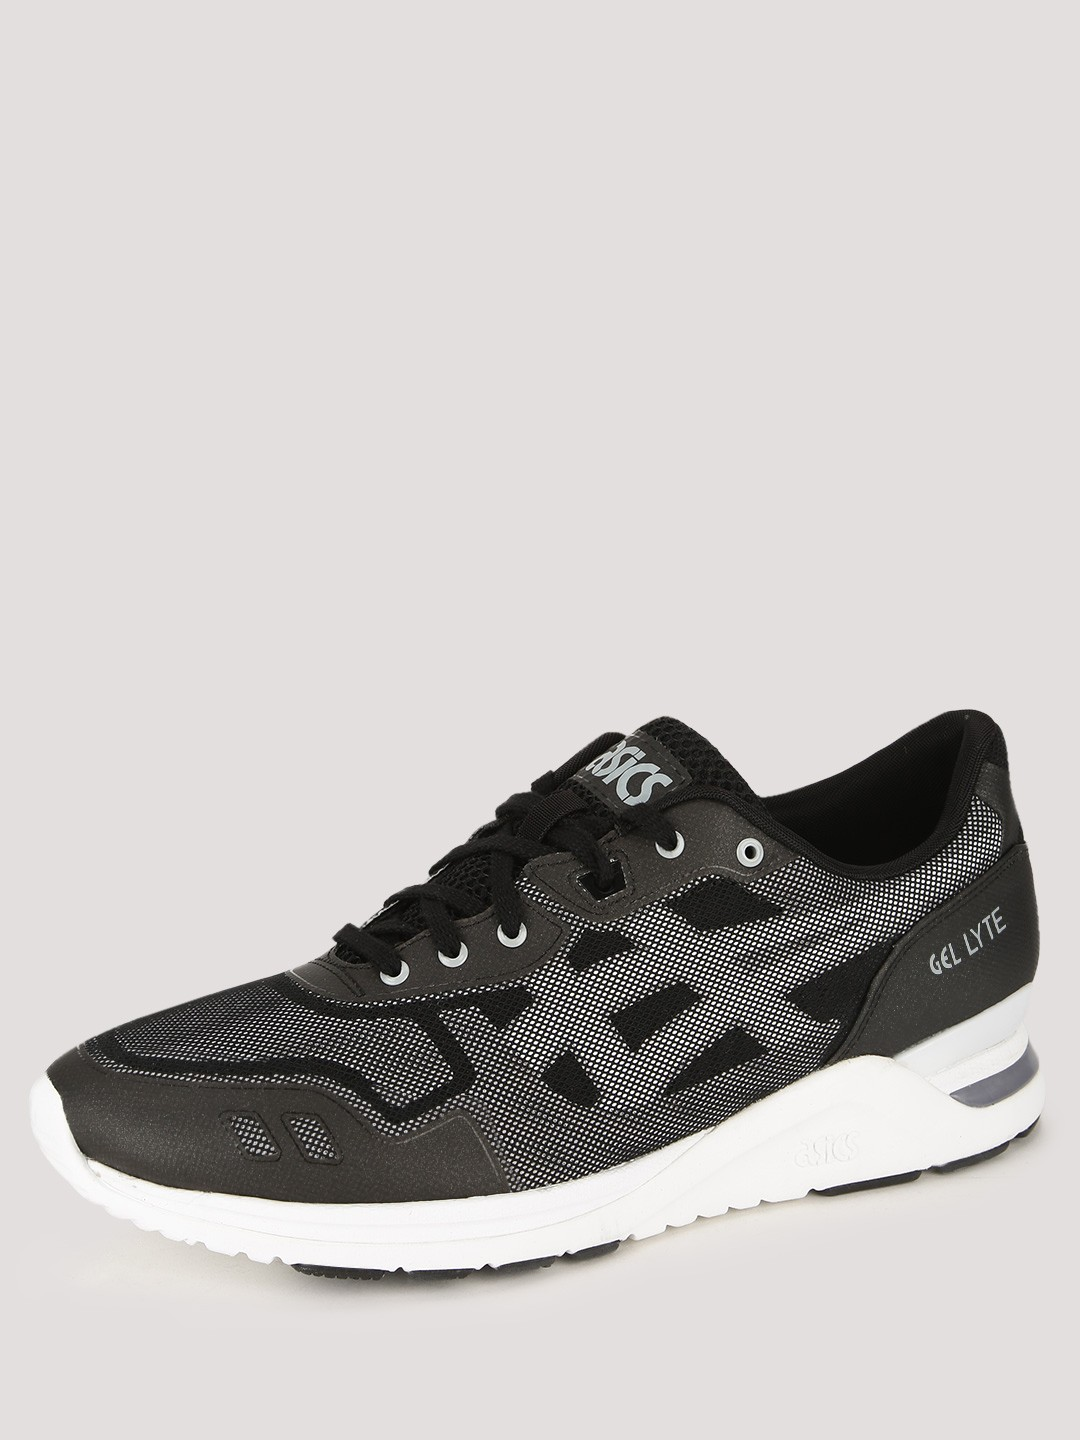 huge discount 2ca5f a2d4f Buy Asics Tiger Black/White Gel-lyte Evo Nt Trainers for Men ...